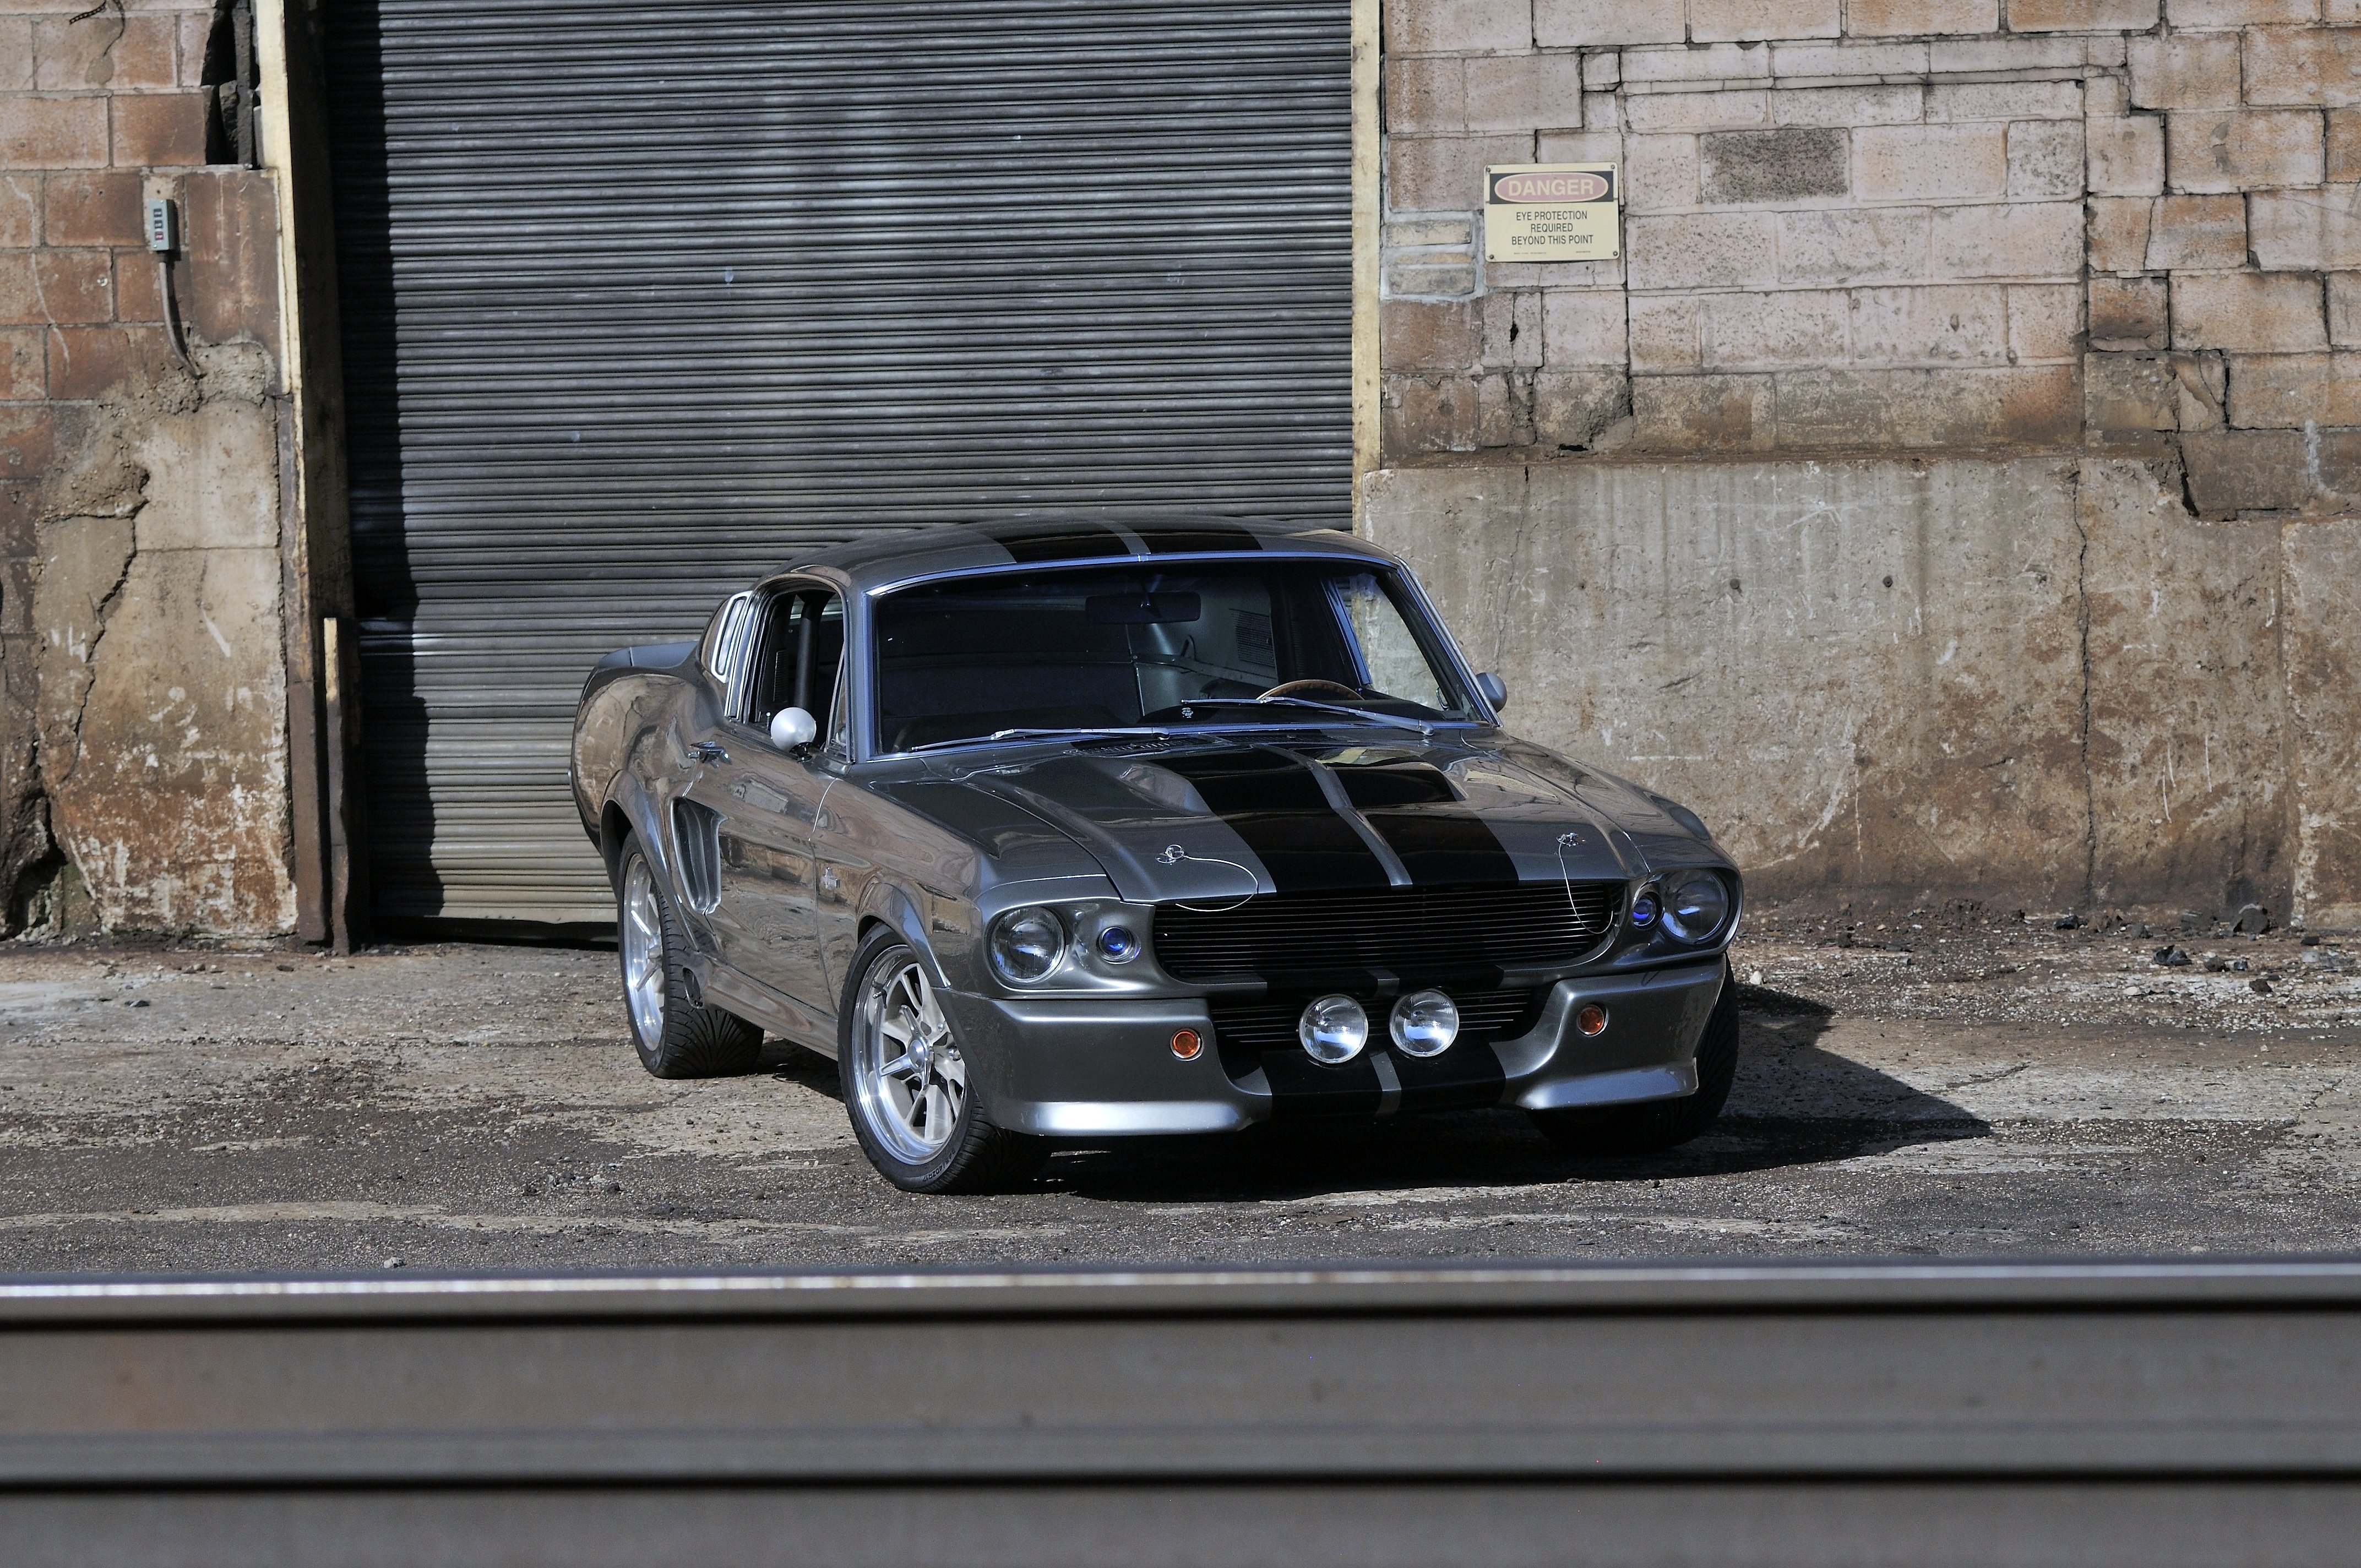 1967 ford mustang shelby gt500 eleanor gone in 60 seconds muscle street rod machine usa 4288x2848 19 wallpaper 4288x2848 653487 wallpaperup